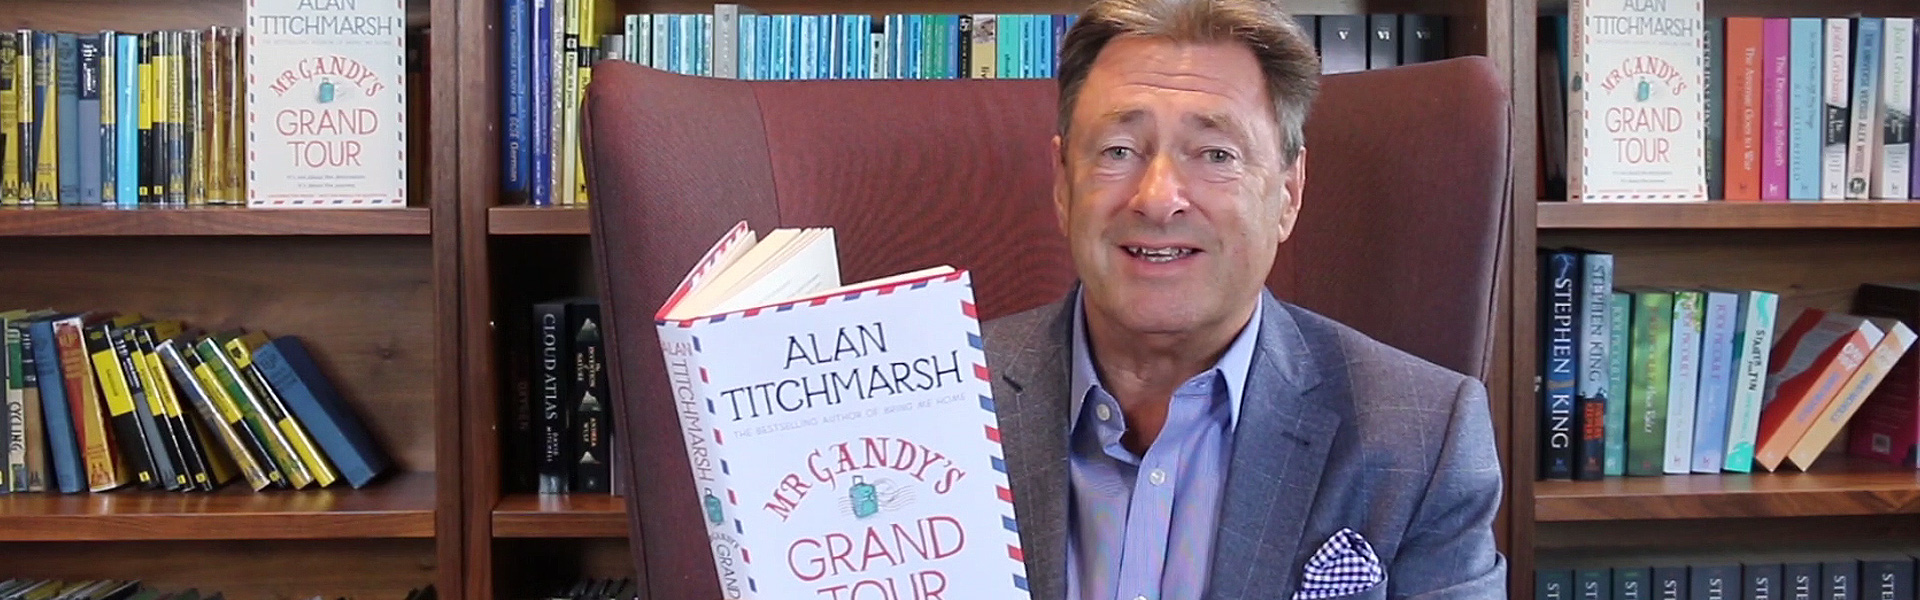 Exclusive Video! Alan Titchmarsh Reads an Extract from Mr Gandy's Grand Tour